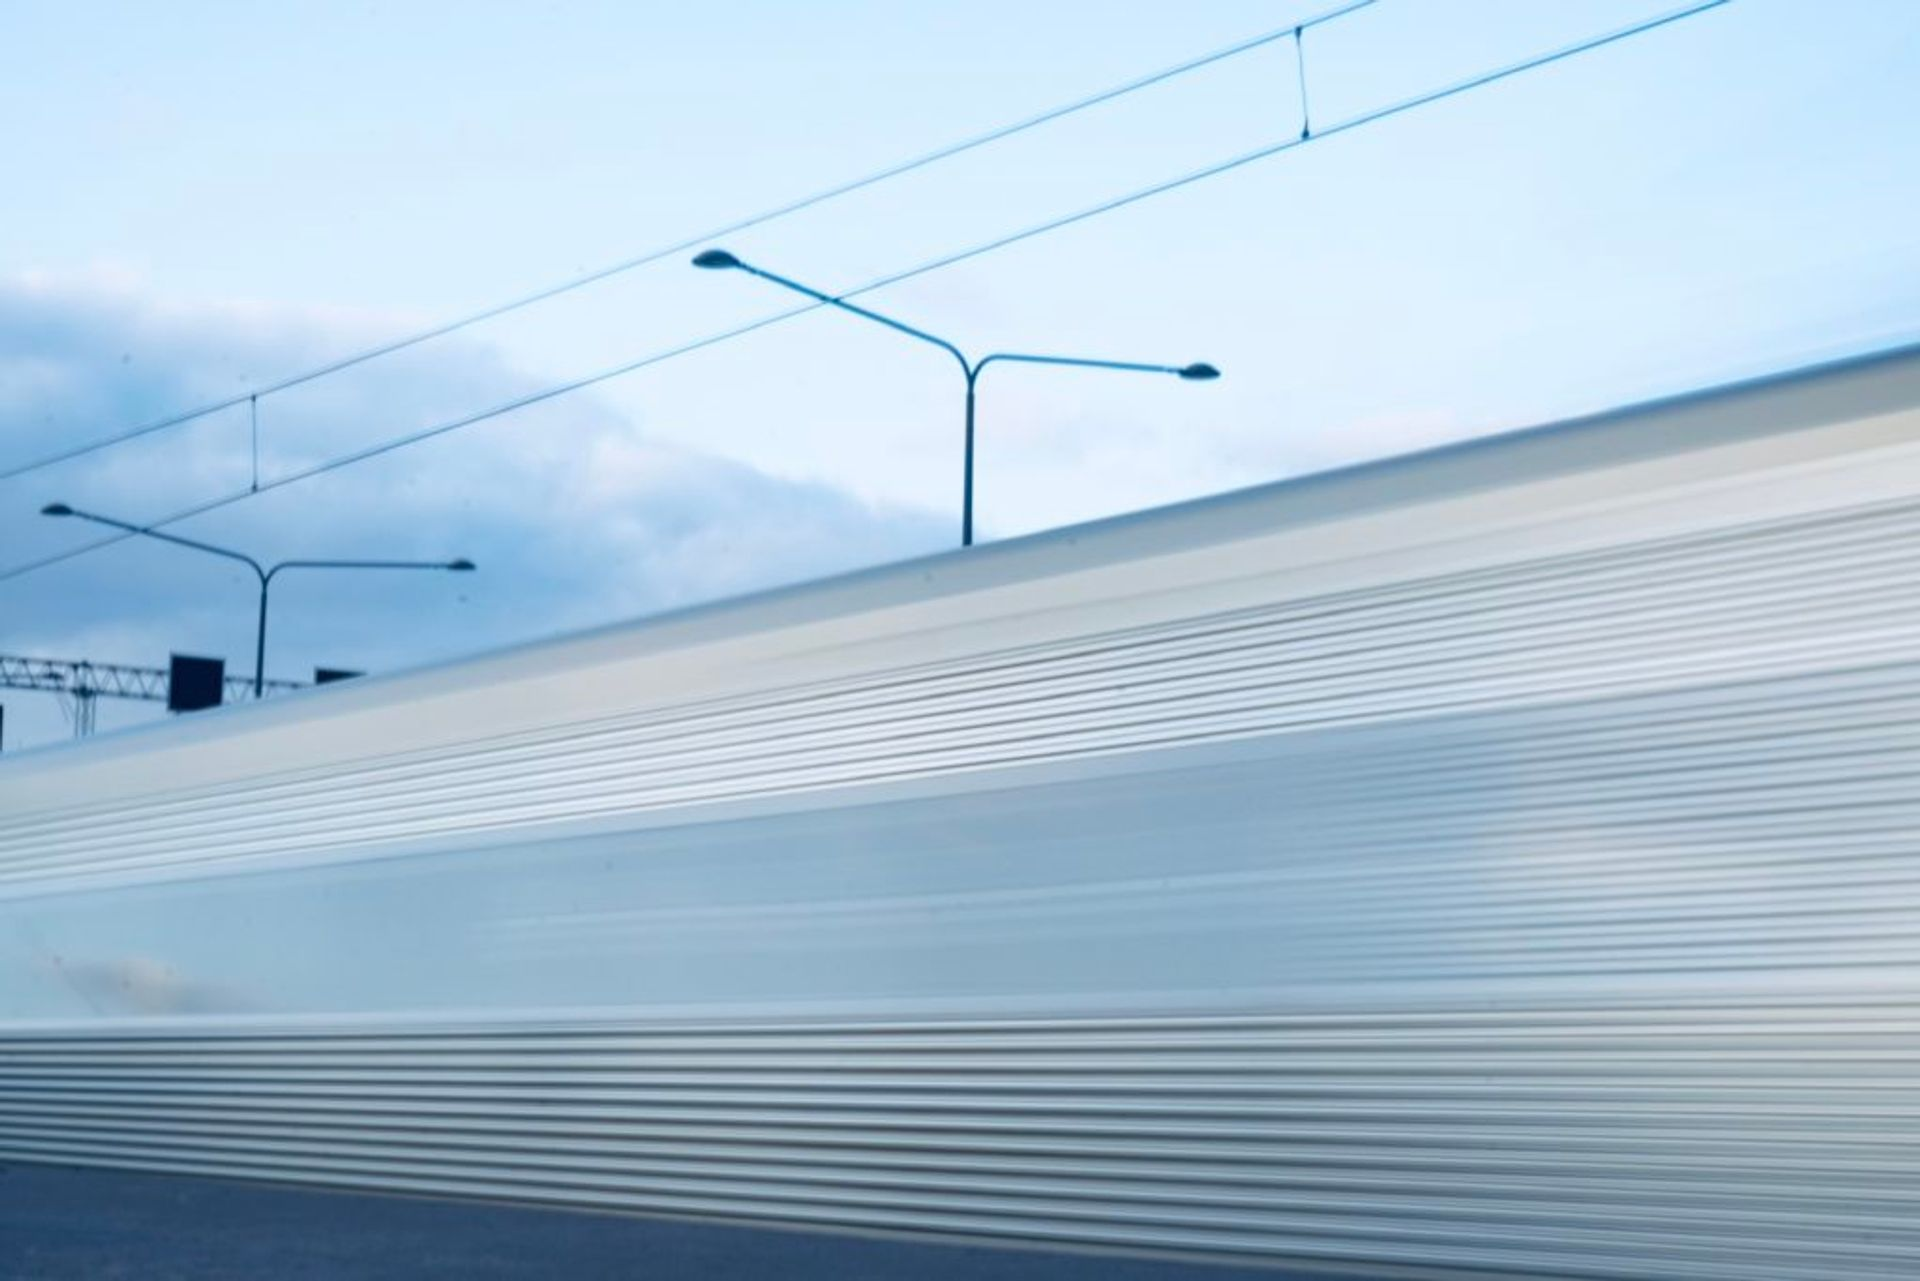 A silver train passing by quickly.